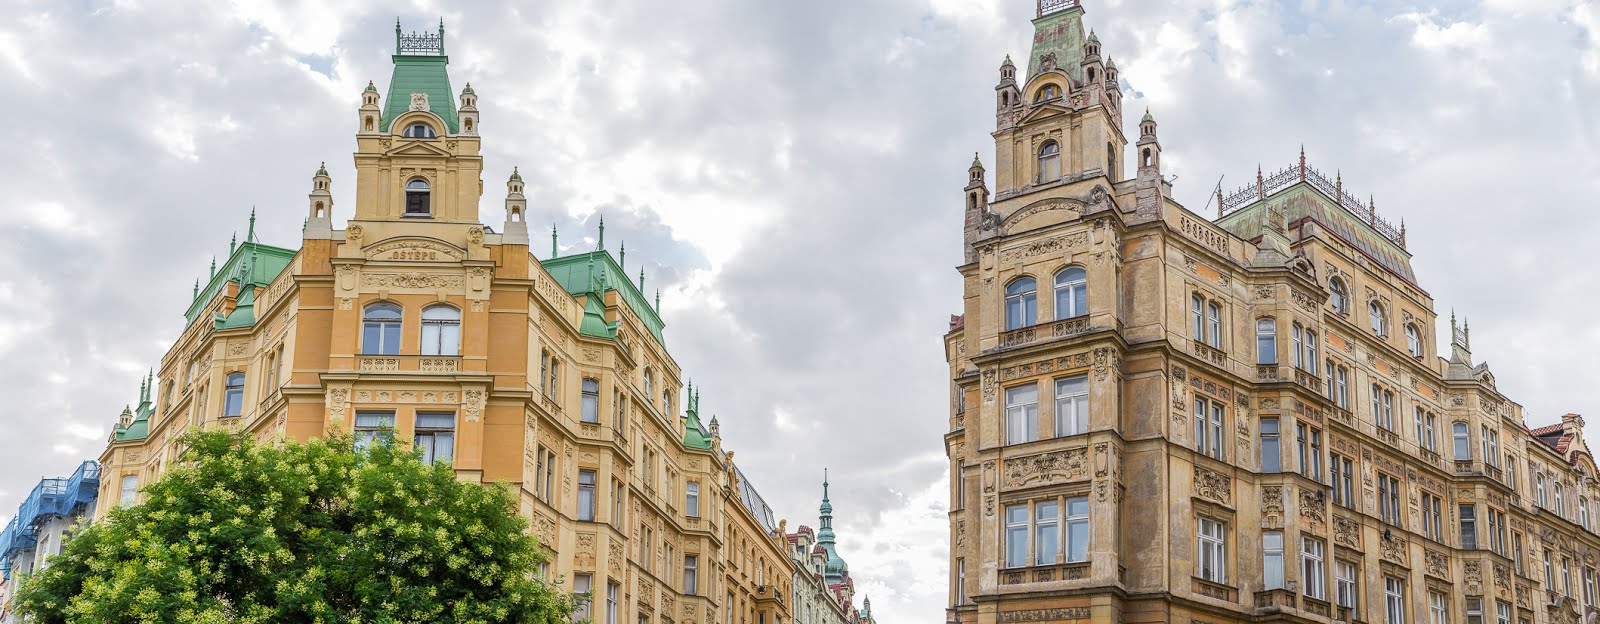 Prague architecture voyage